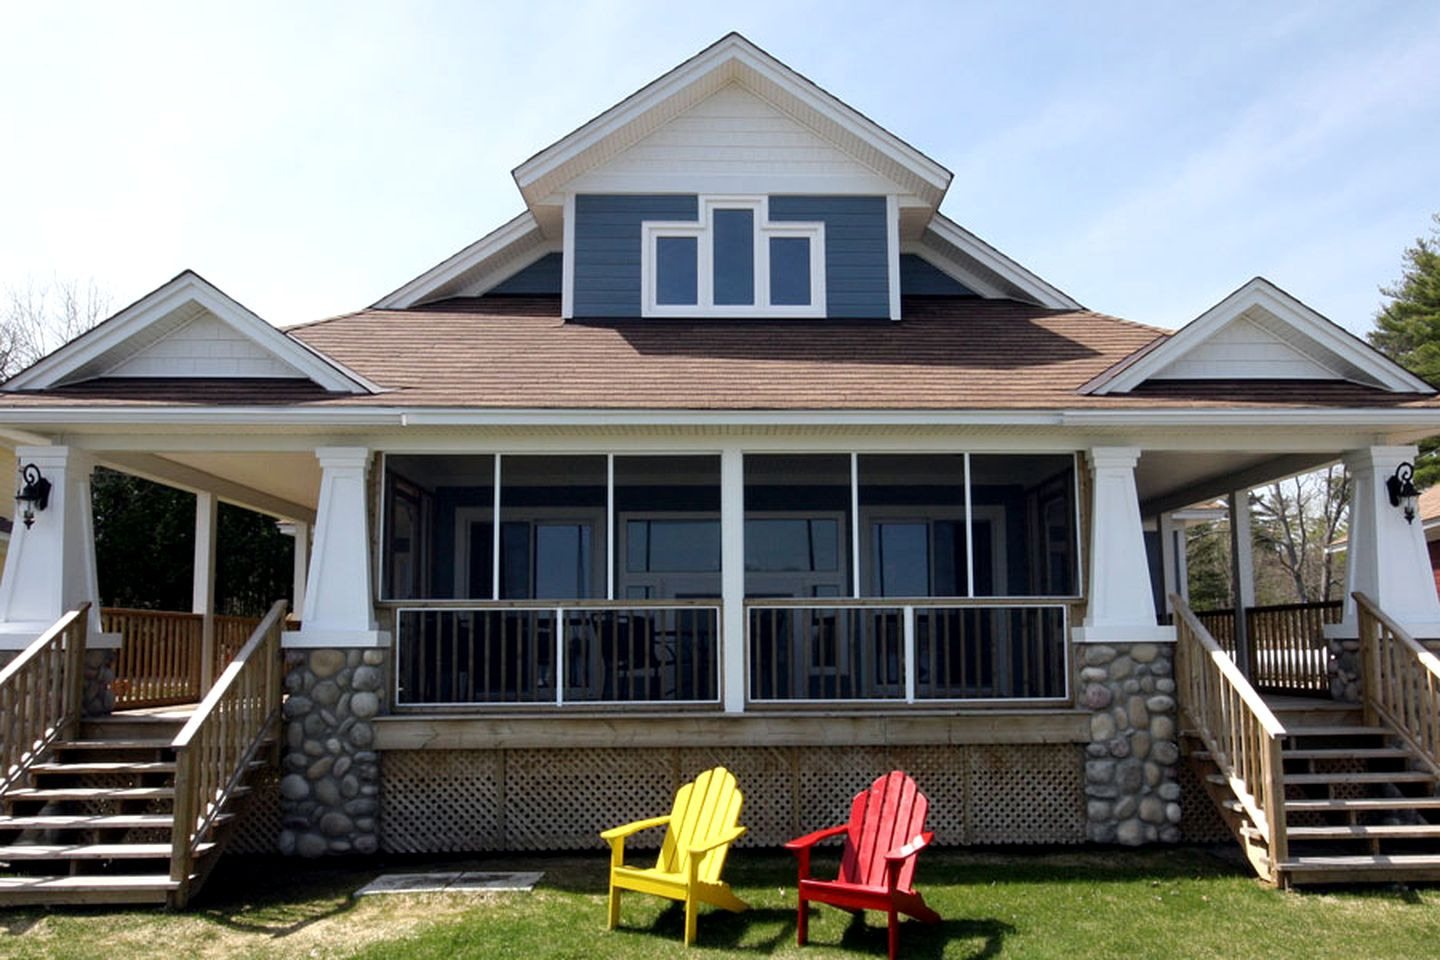 Vacation Rentals (Severn Bridge, Ontario, Canada)